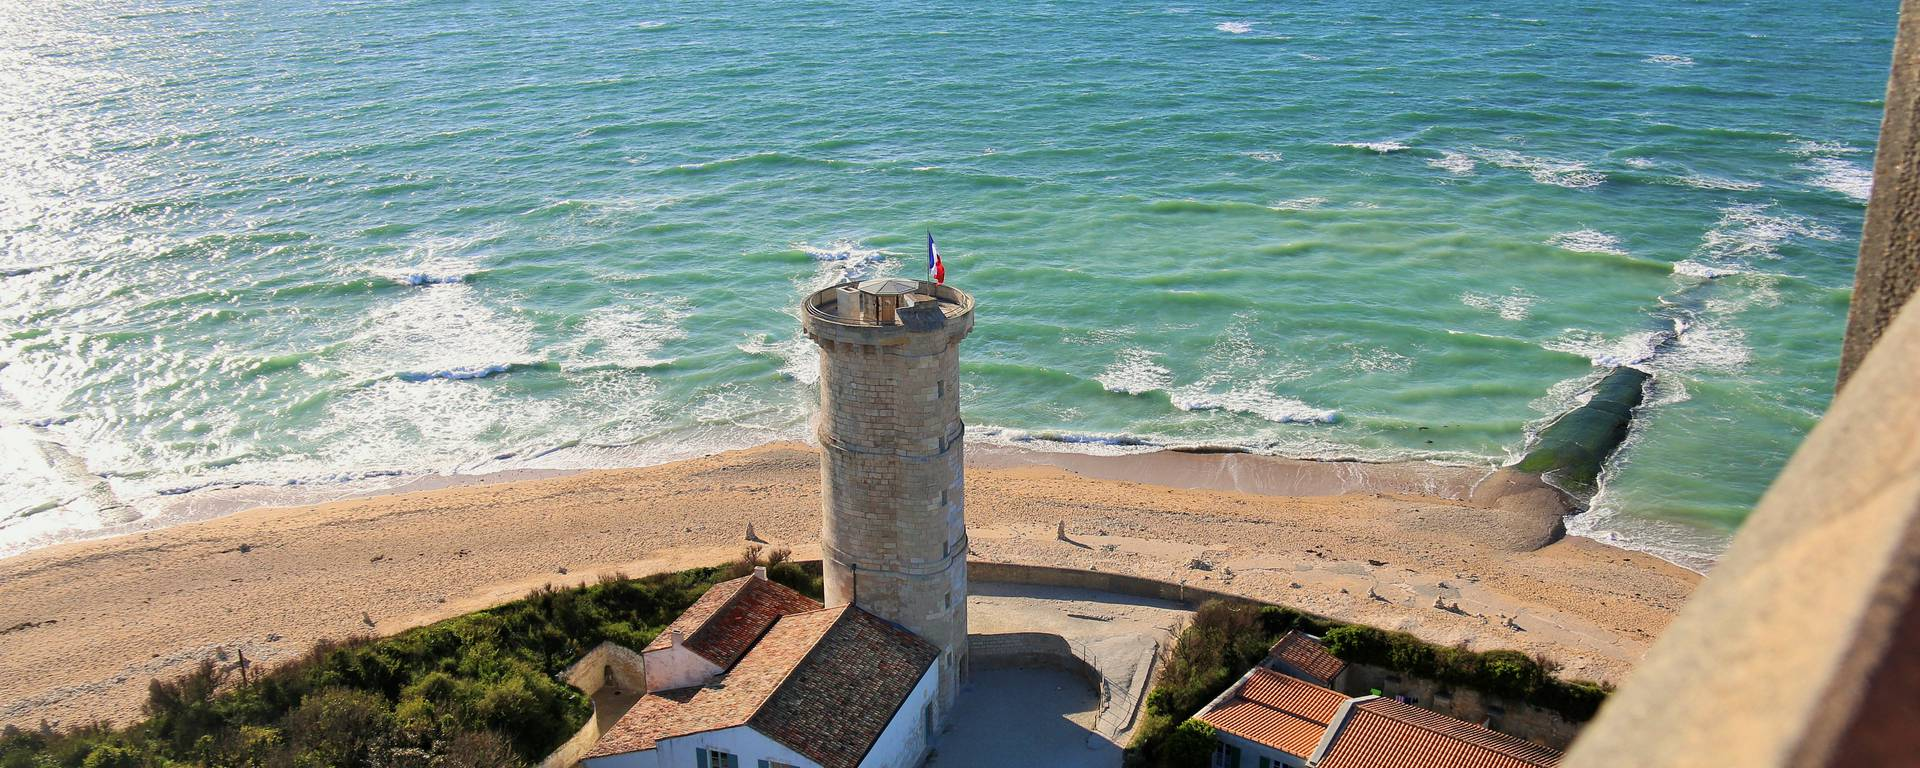 The Old Tower seen from the Lighthouse